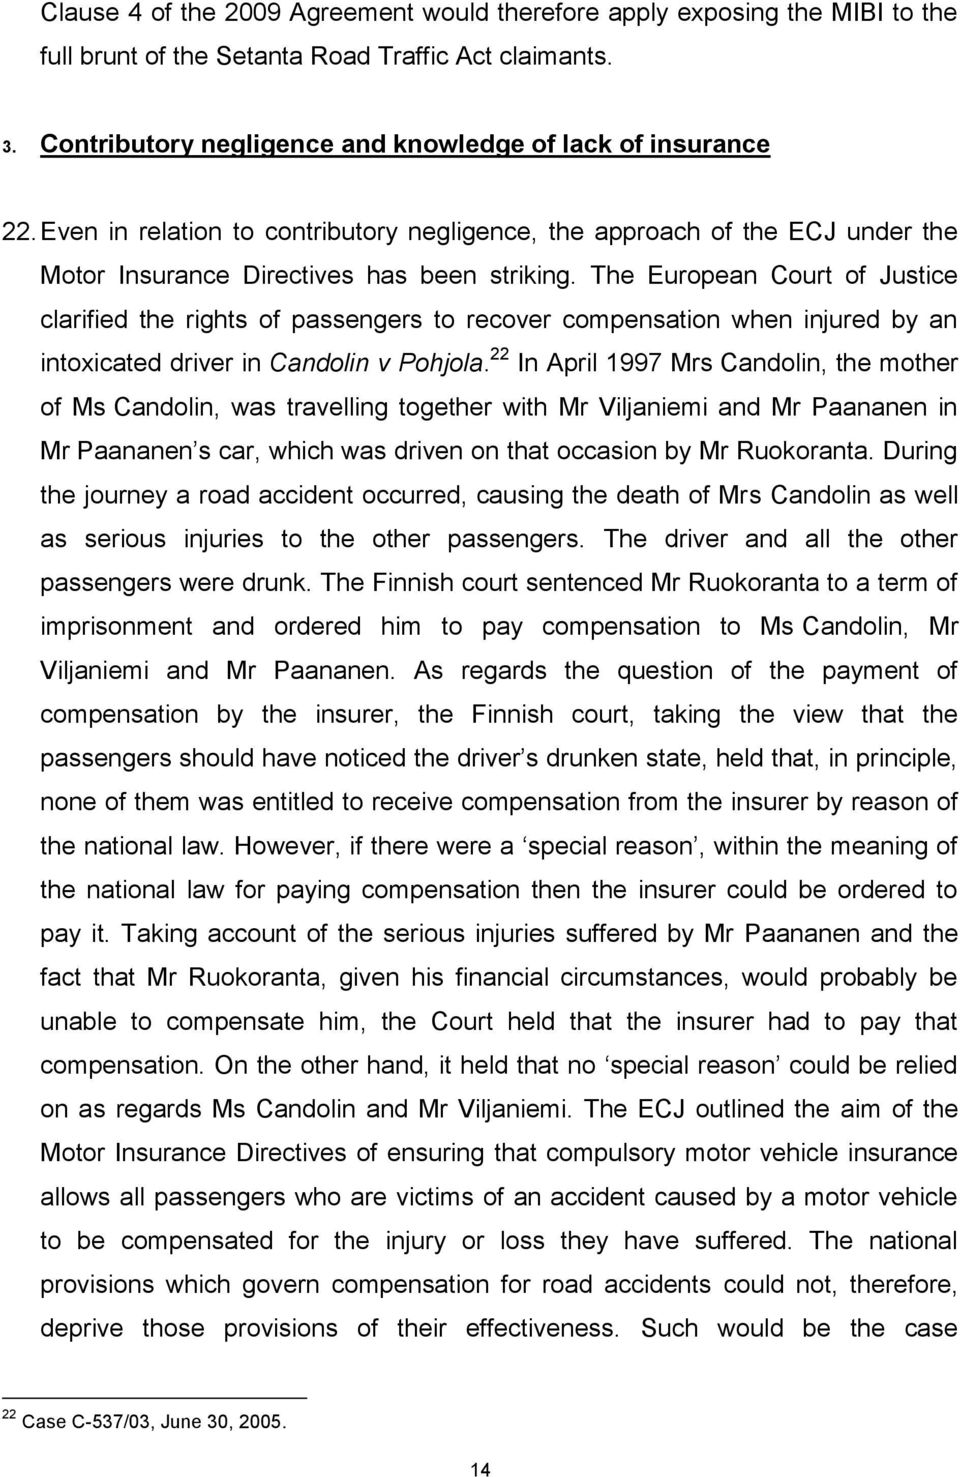 The European Court of Justice clarified the rights of passengers to recover compensation when injured by an intoxicated driver in Candolin v Pohjola.